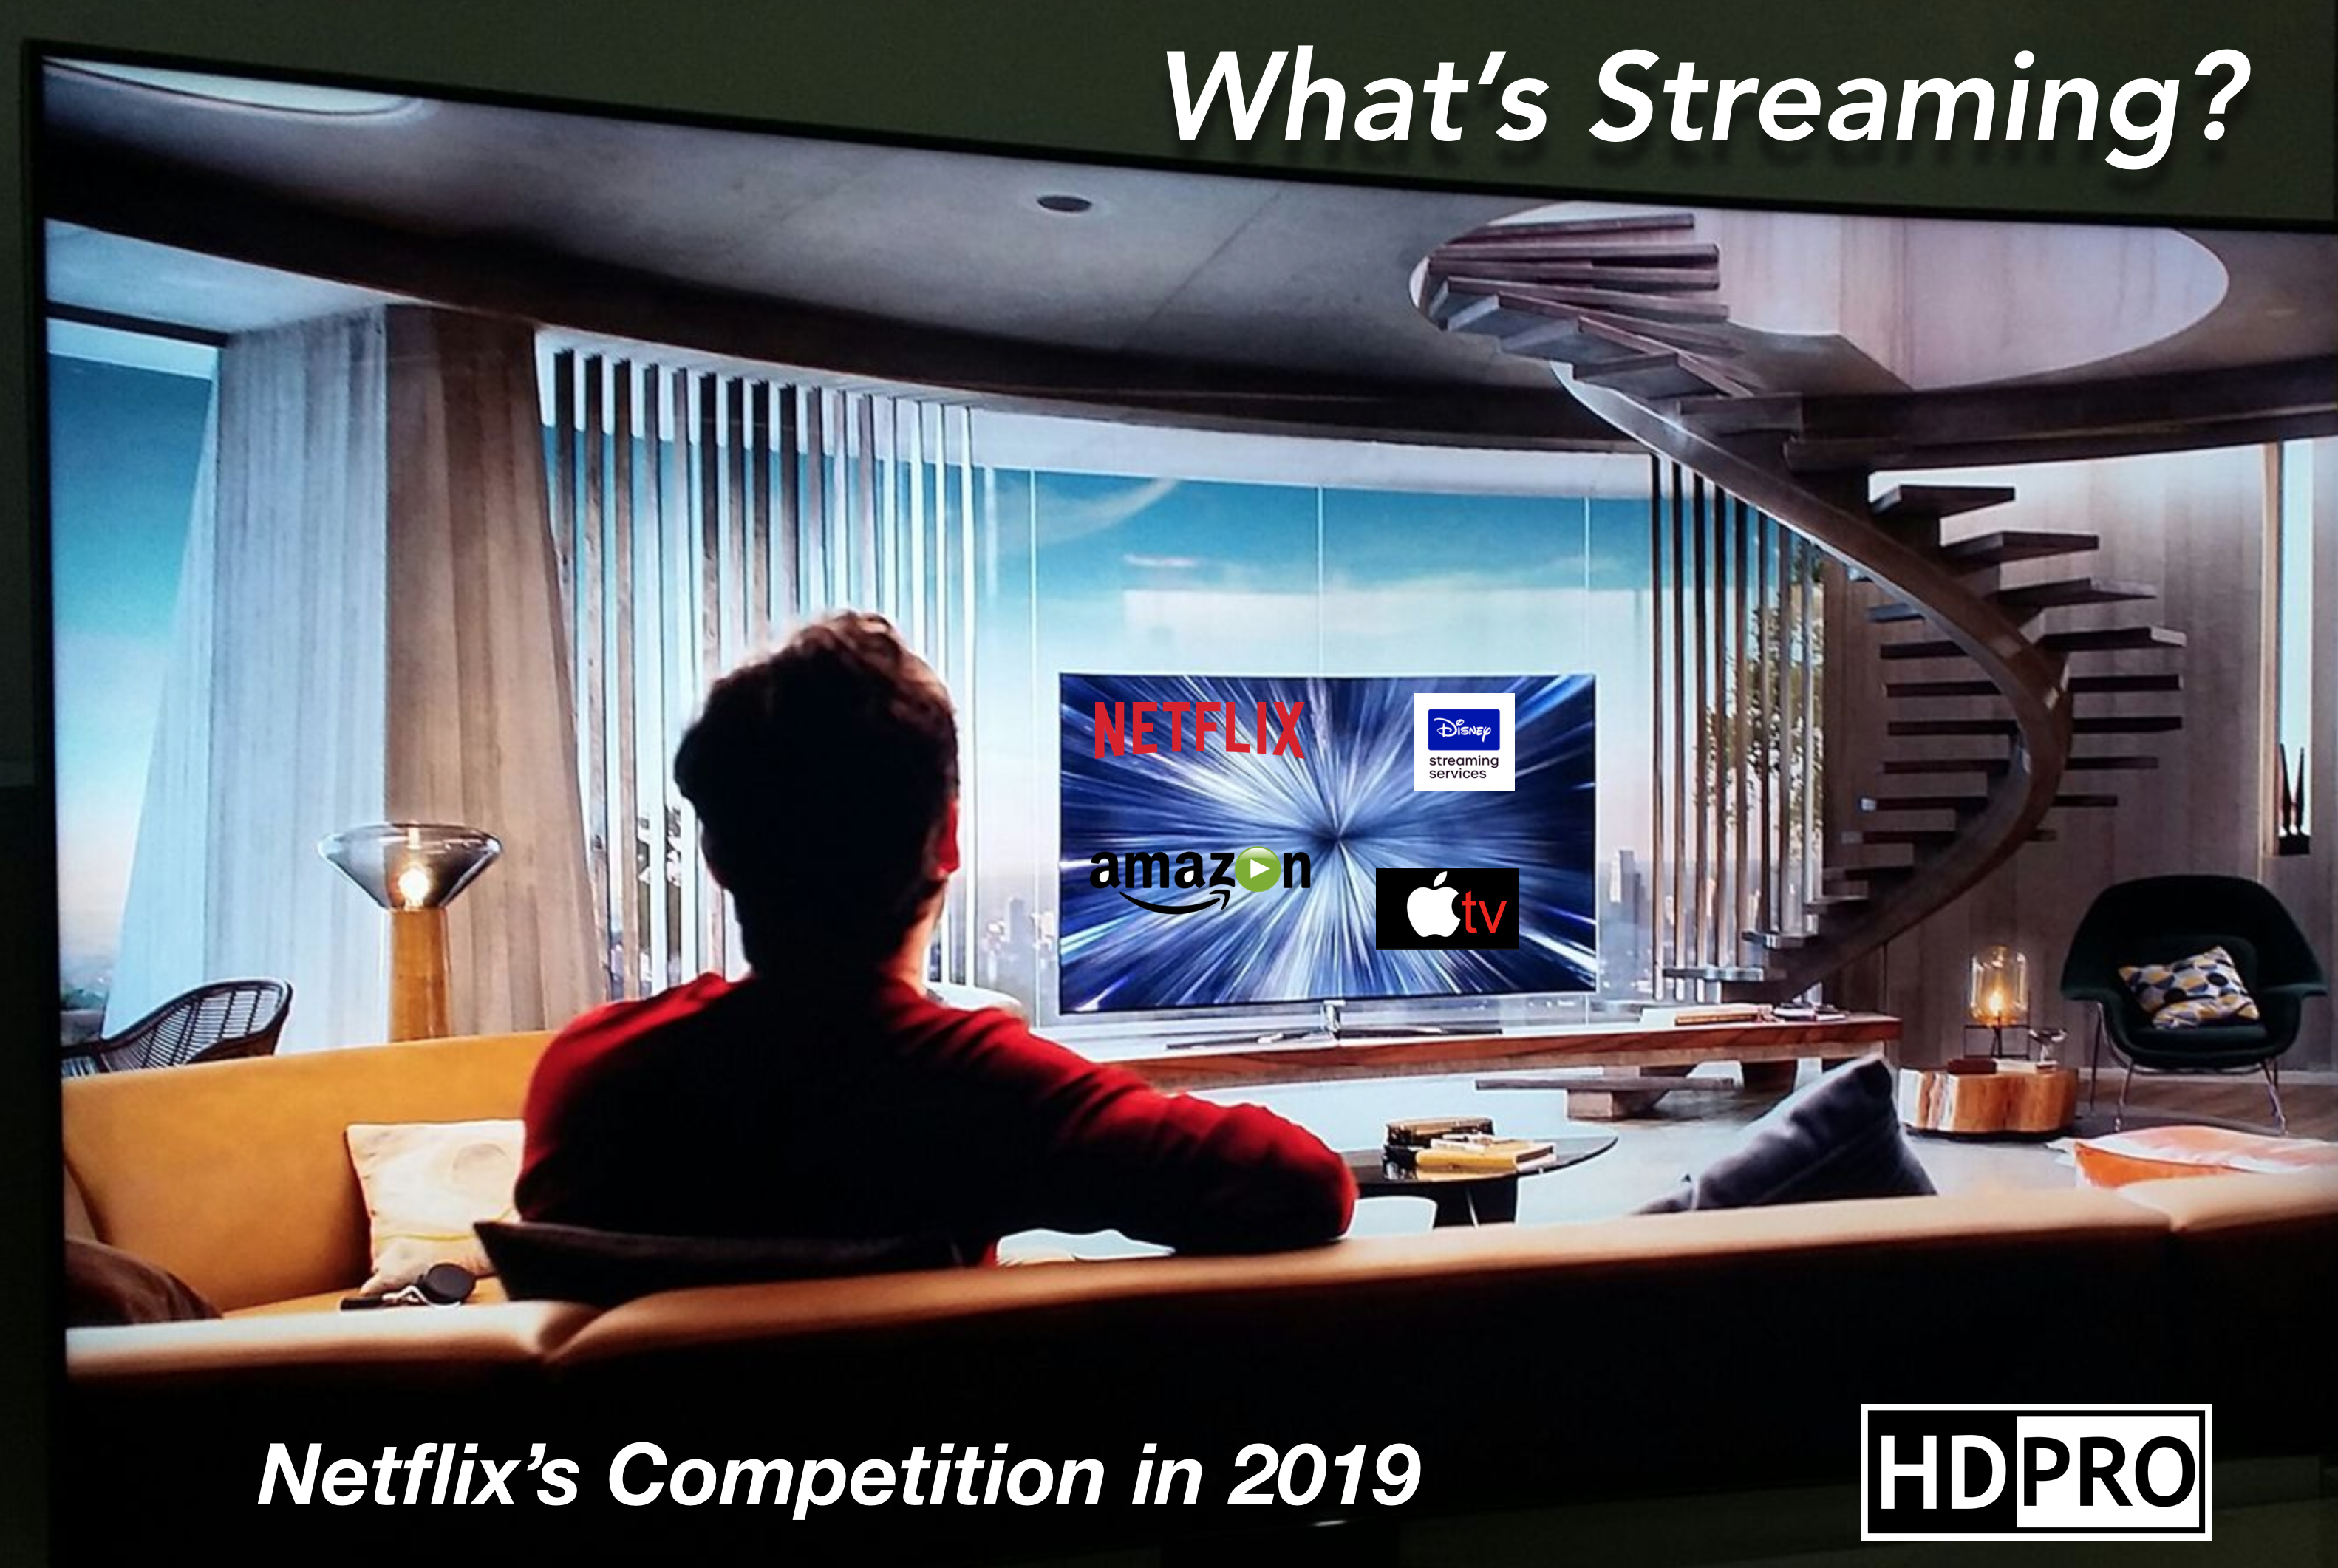 Netflix Has Got Competition For 2019 - High-Definition Pro - Medium